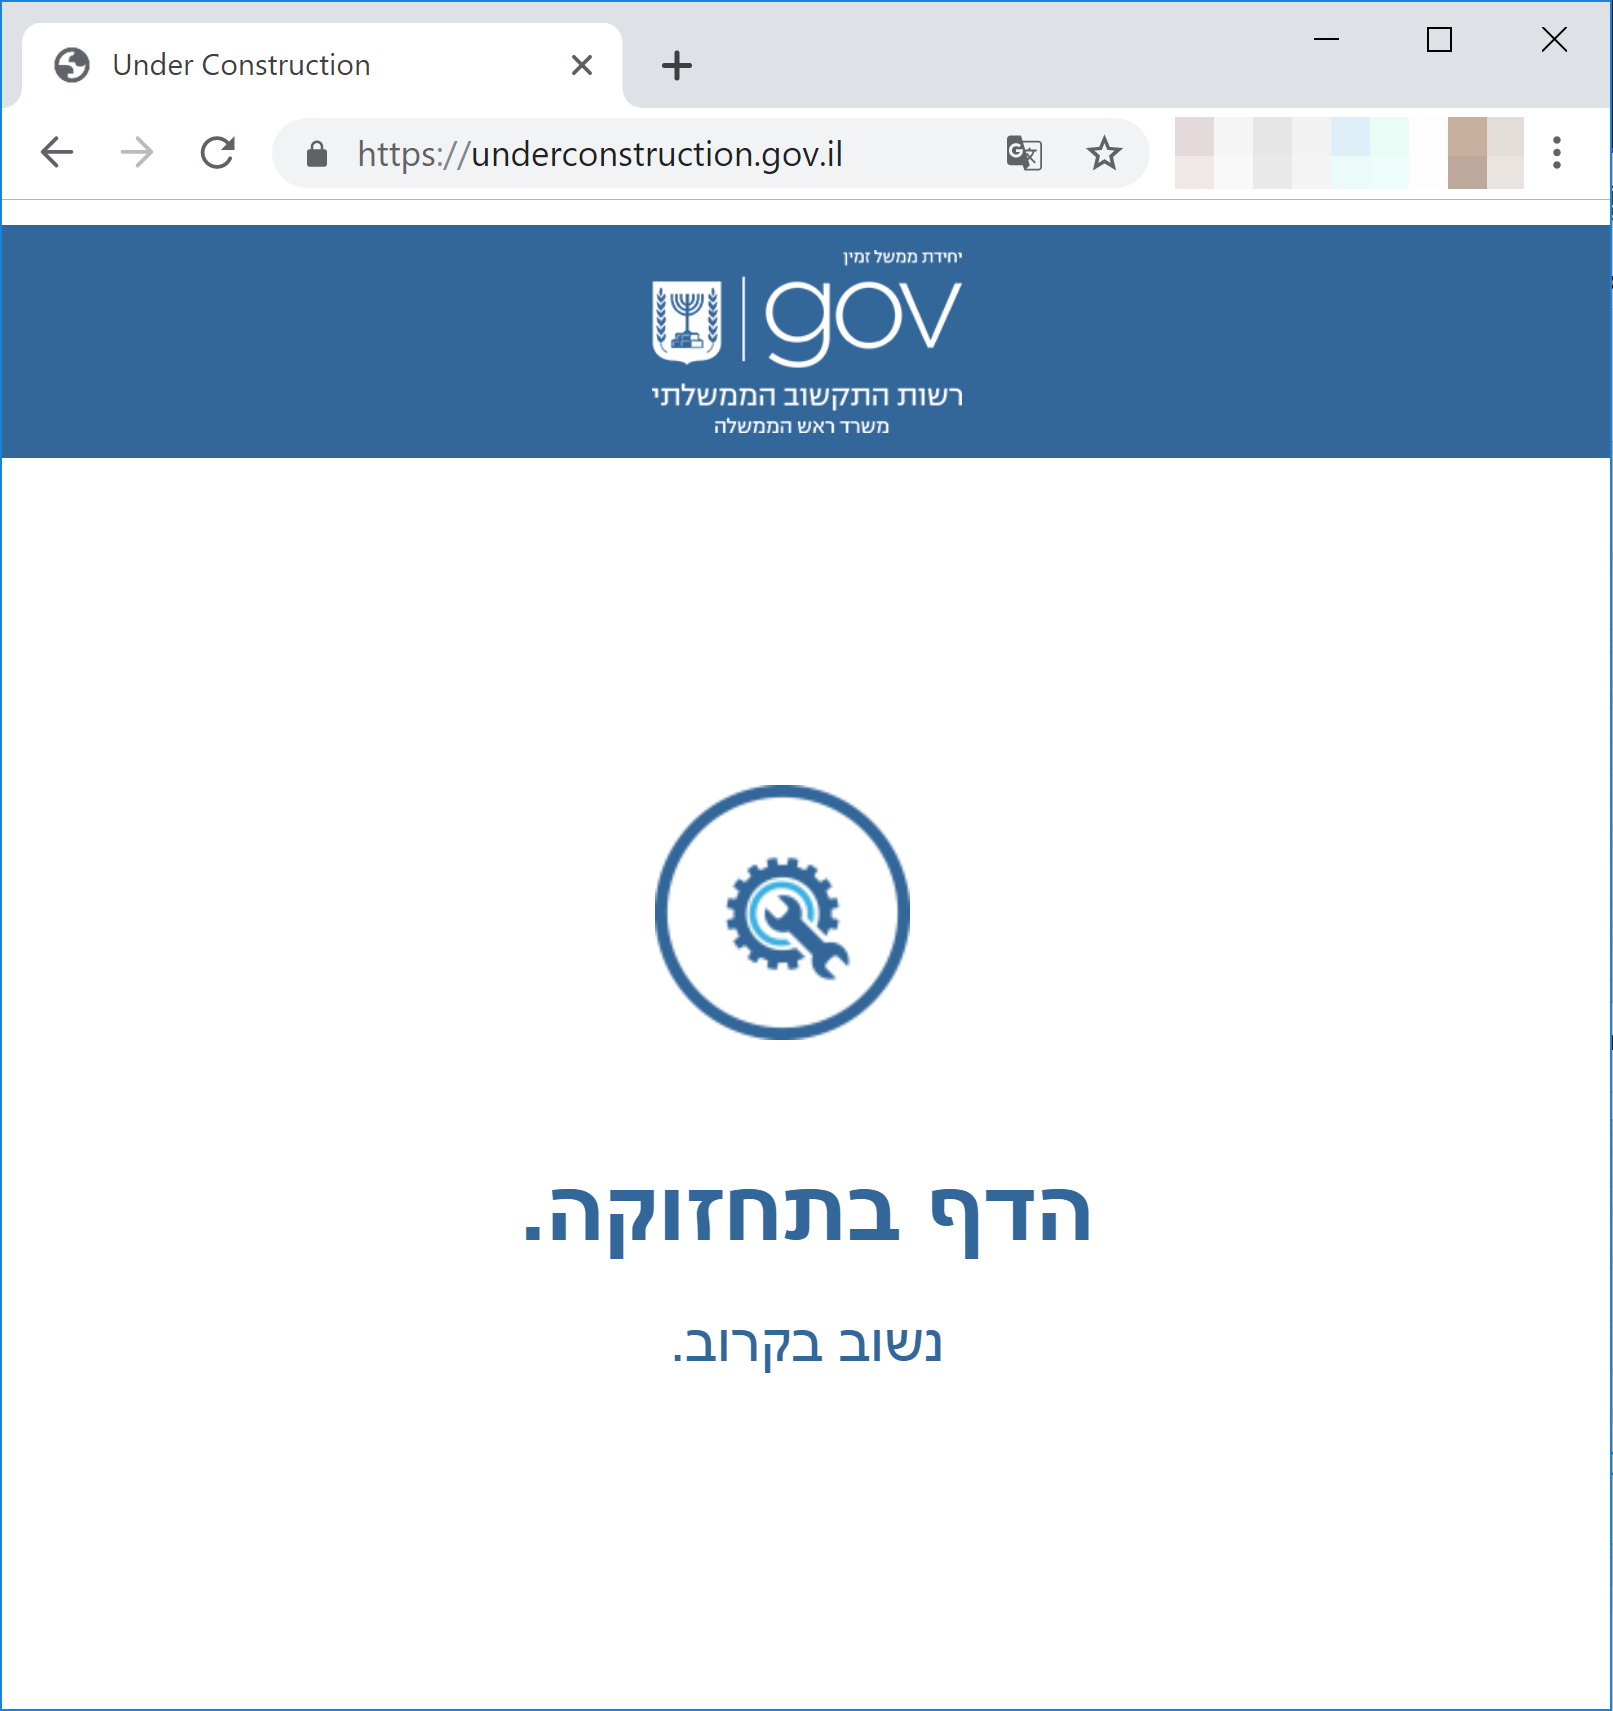 דף הבית של underconstruction.gov.il